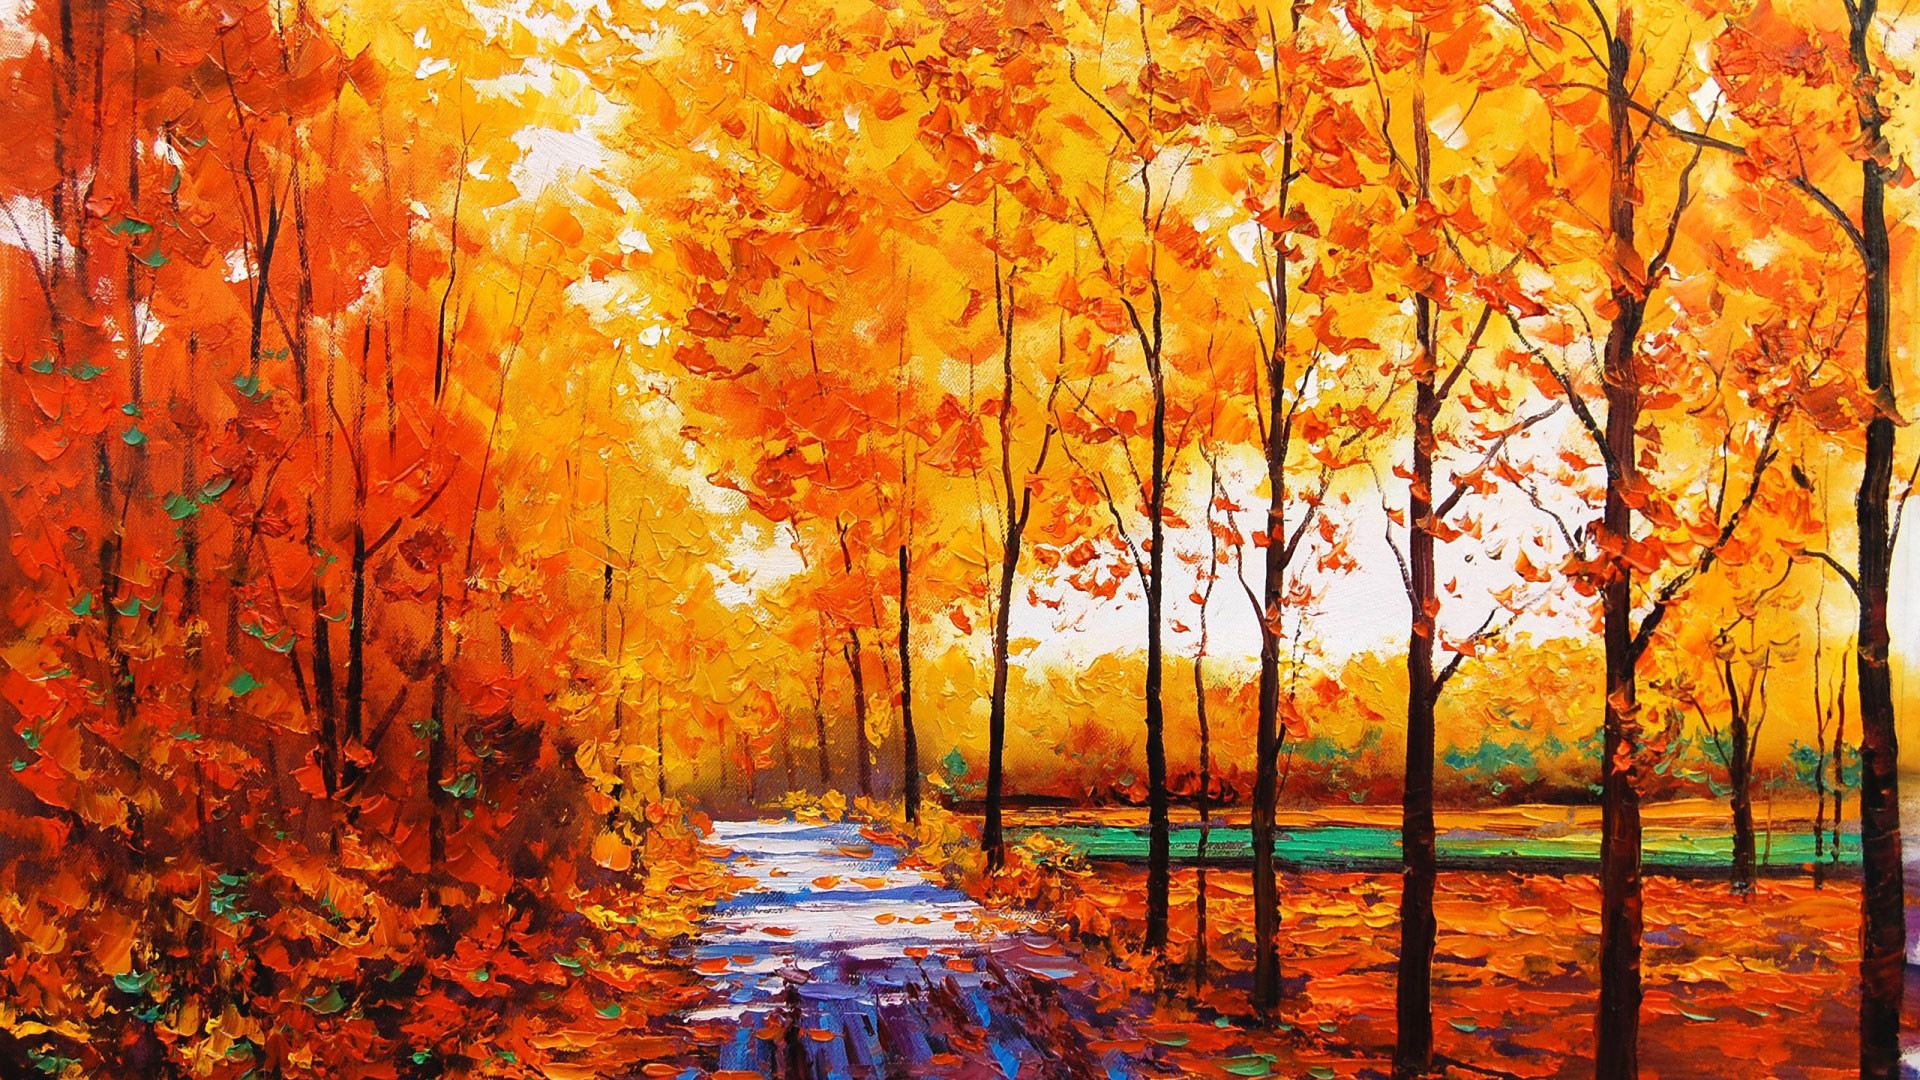 1920x1080 hd pics photos art autumn forest oil paintings wallpaper